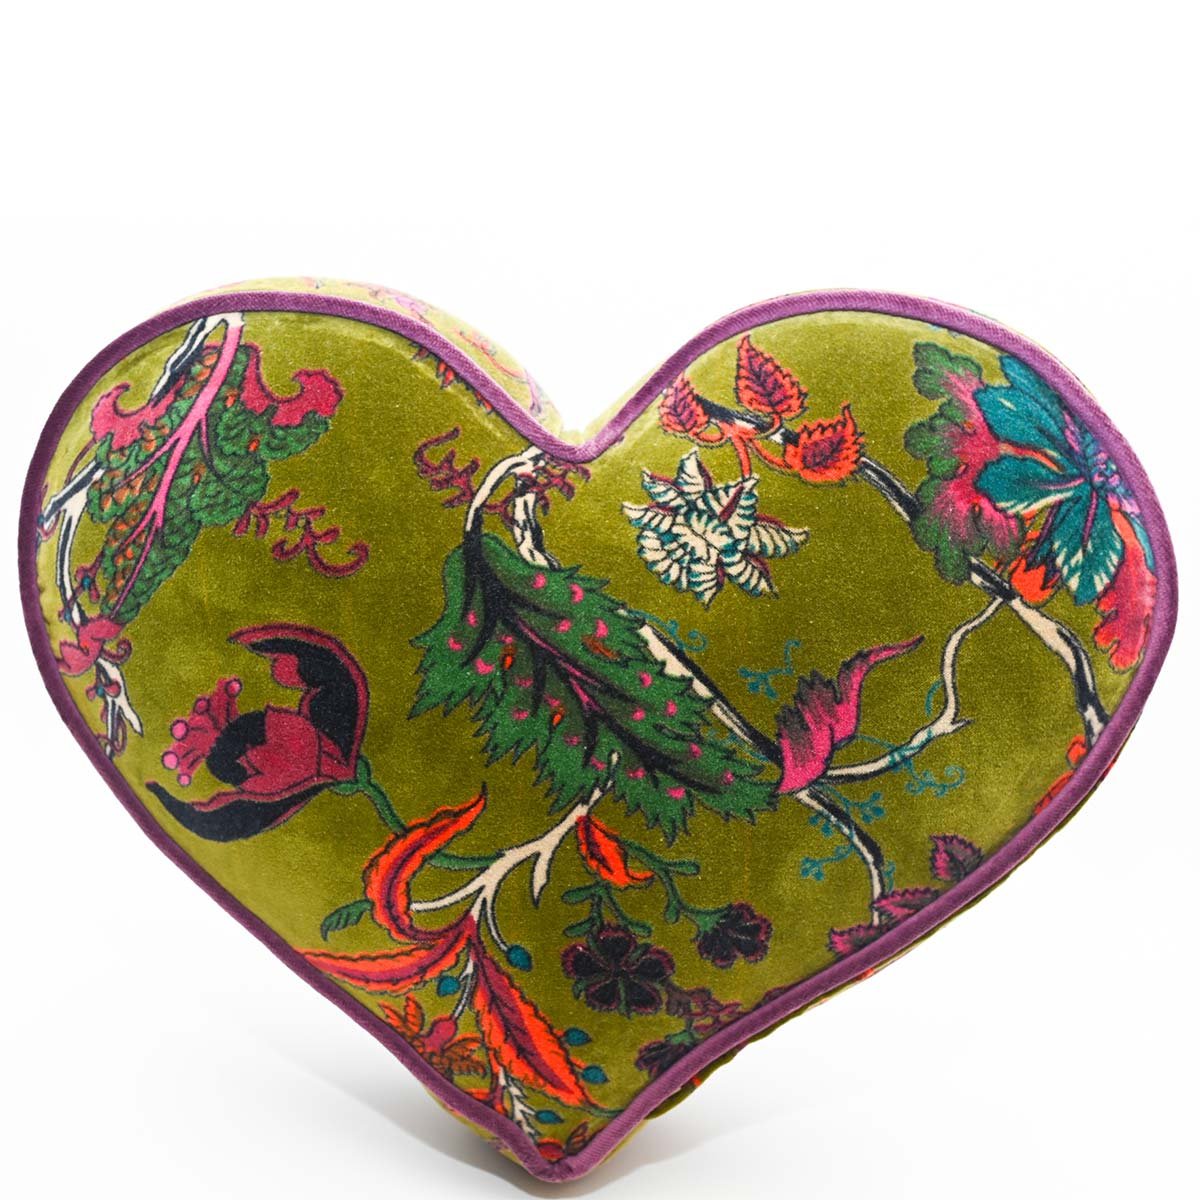 heart pillow large size olive green DSC 6347